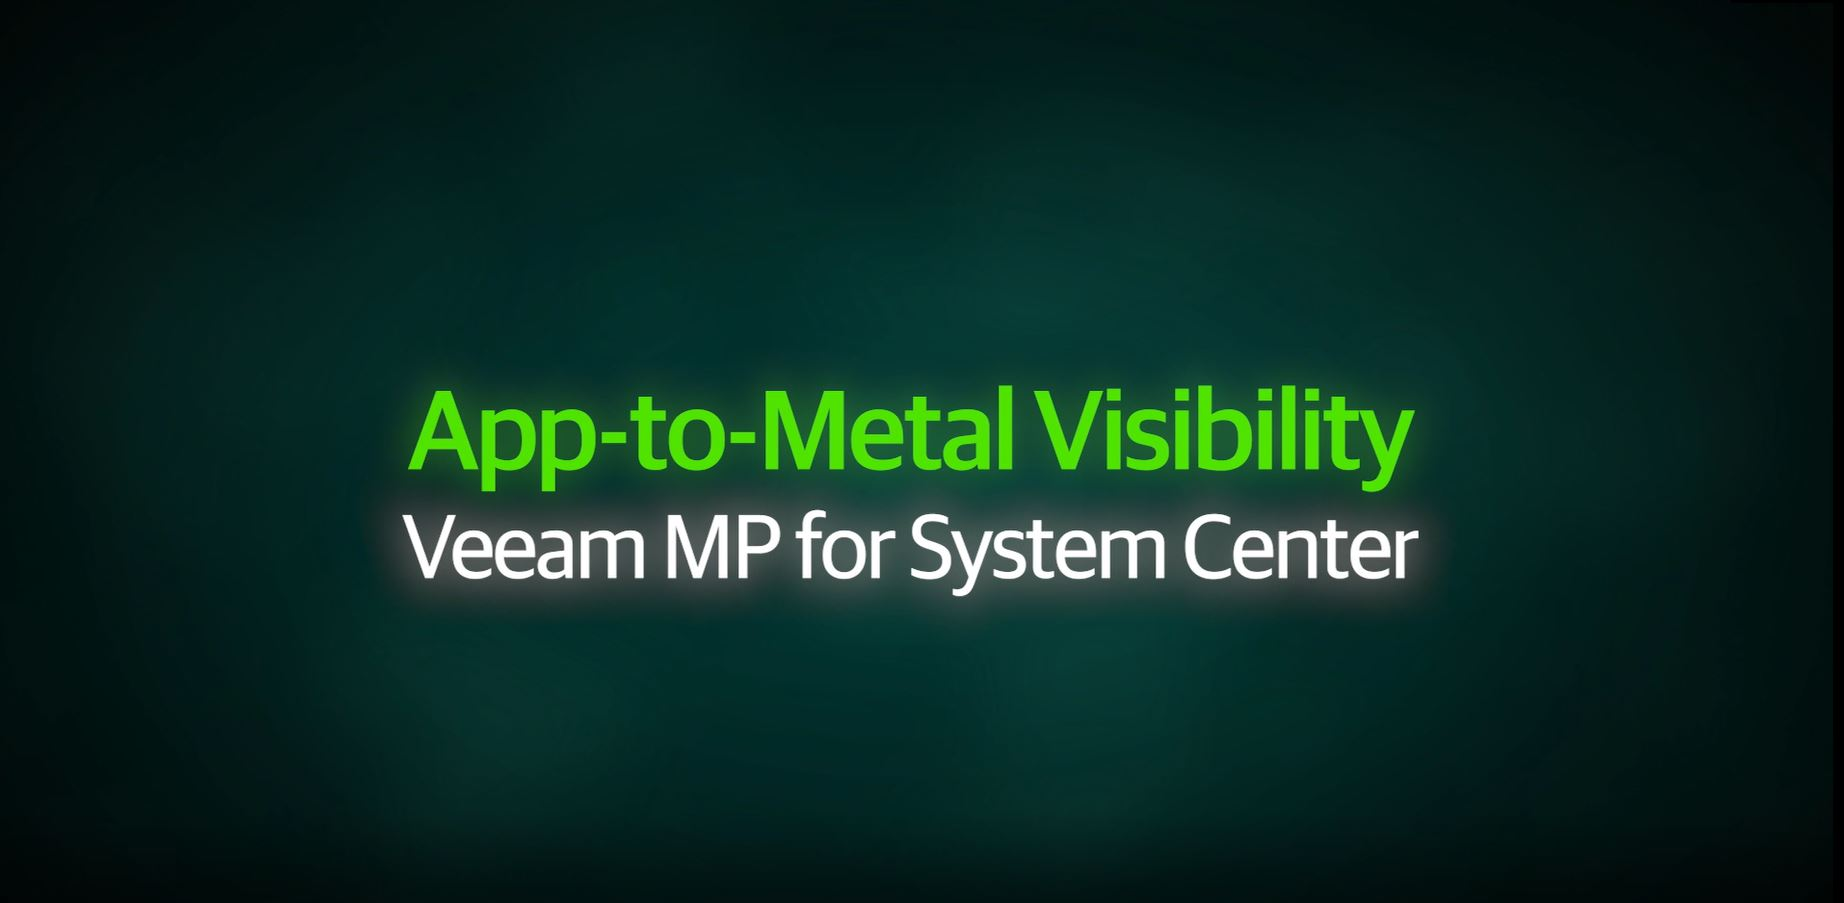 App-to-Metal Visibility – Veeam Management Pack for System Center